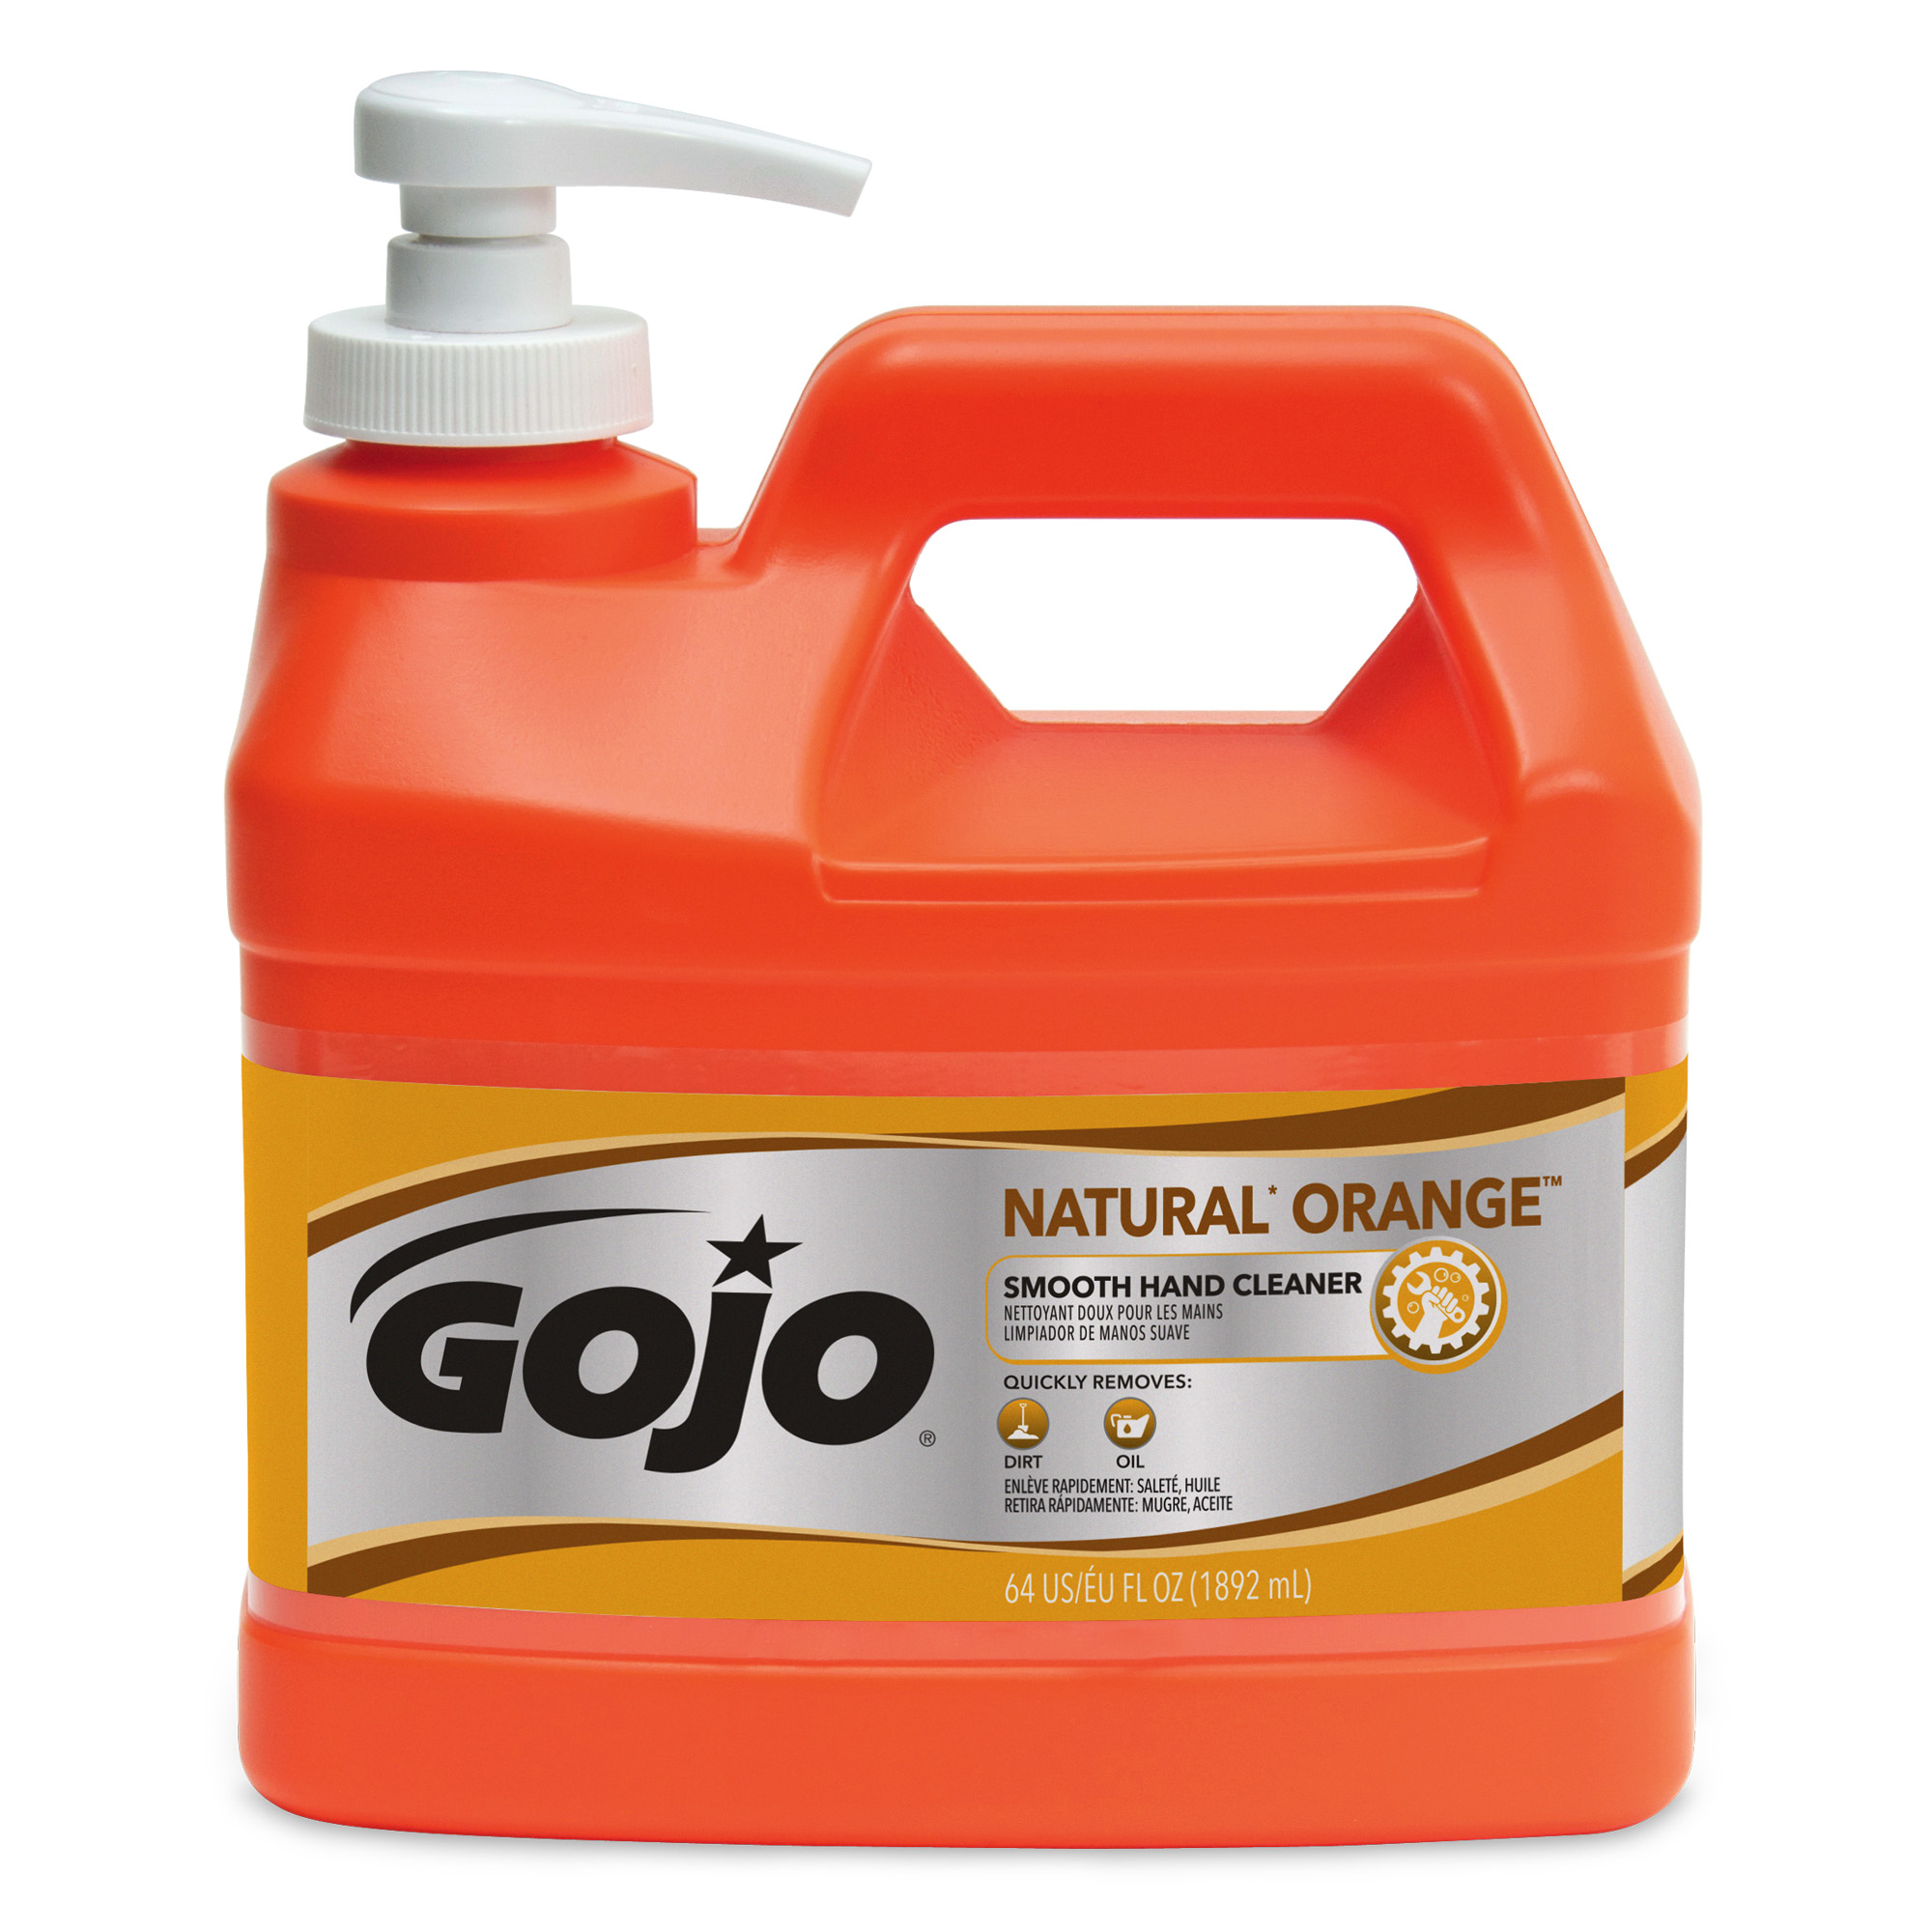 GOJO® NATURAL* ORANGE Smooth Hand Cleaner - 1/2 Gallon Pump Bottle